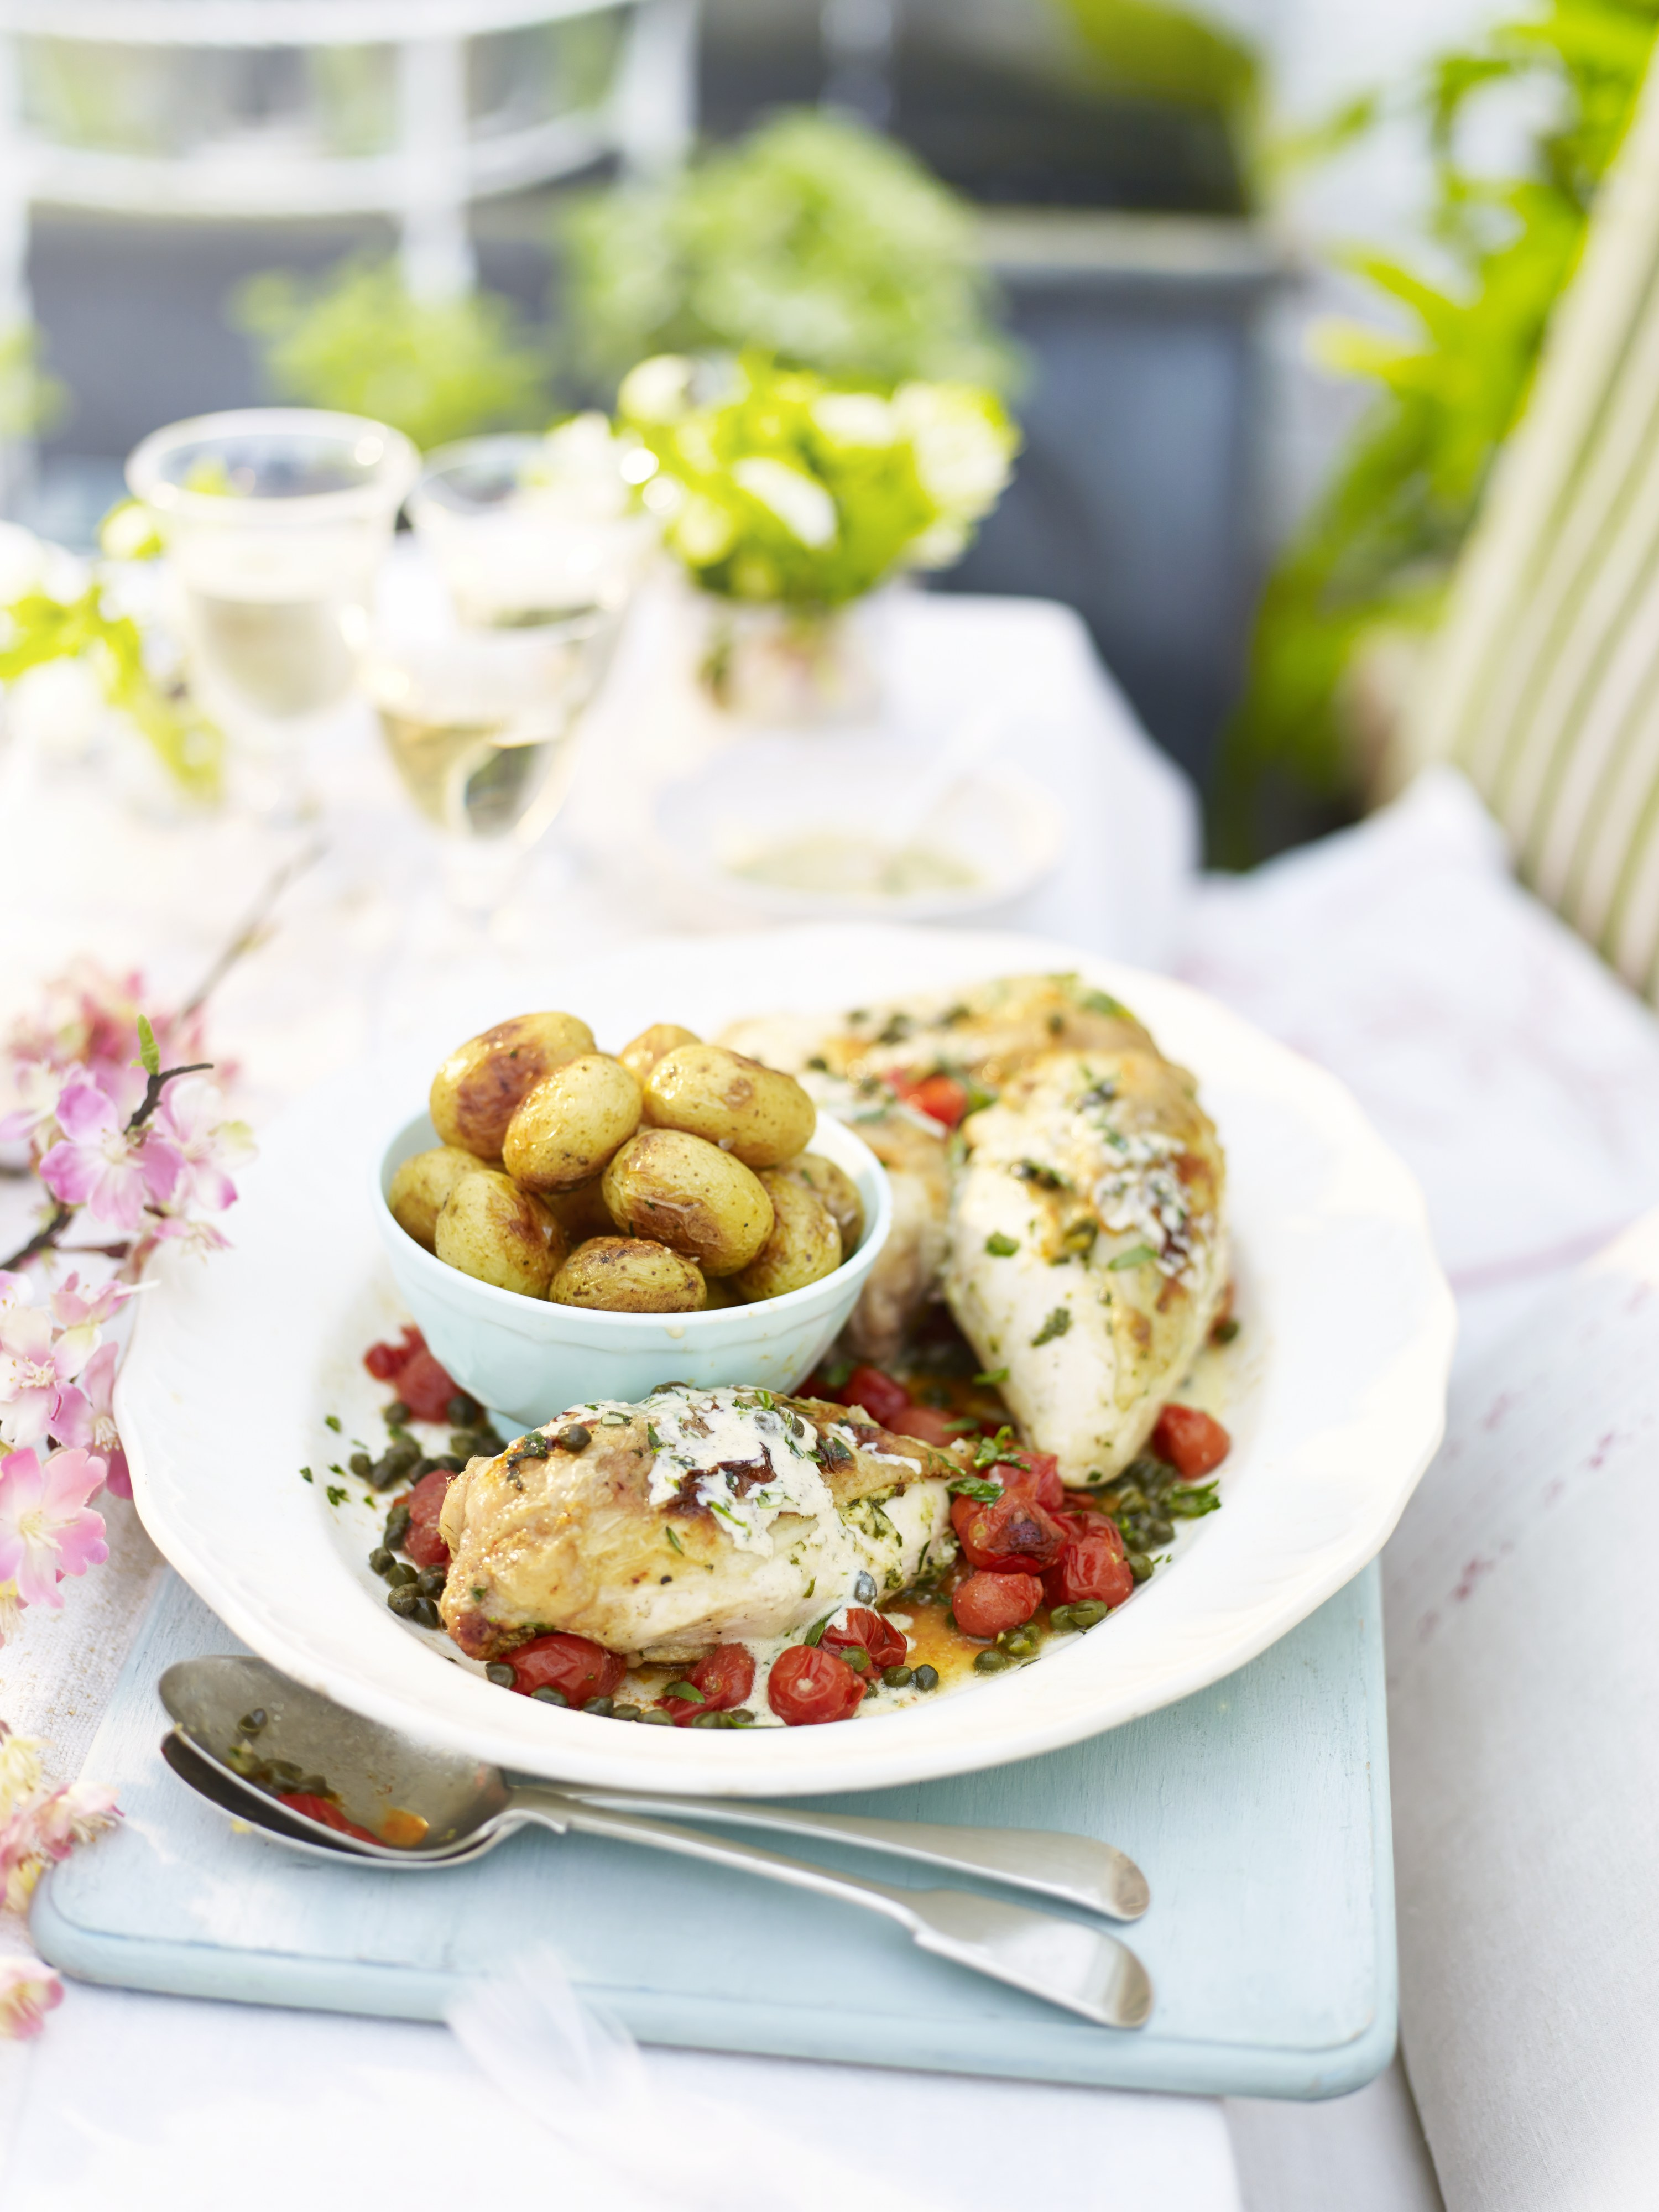 Baked chicken with mascarpone and tarragon